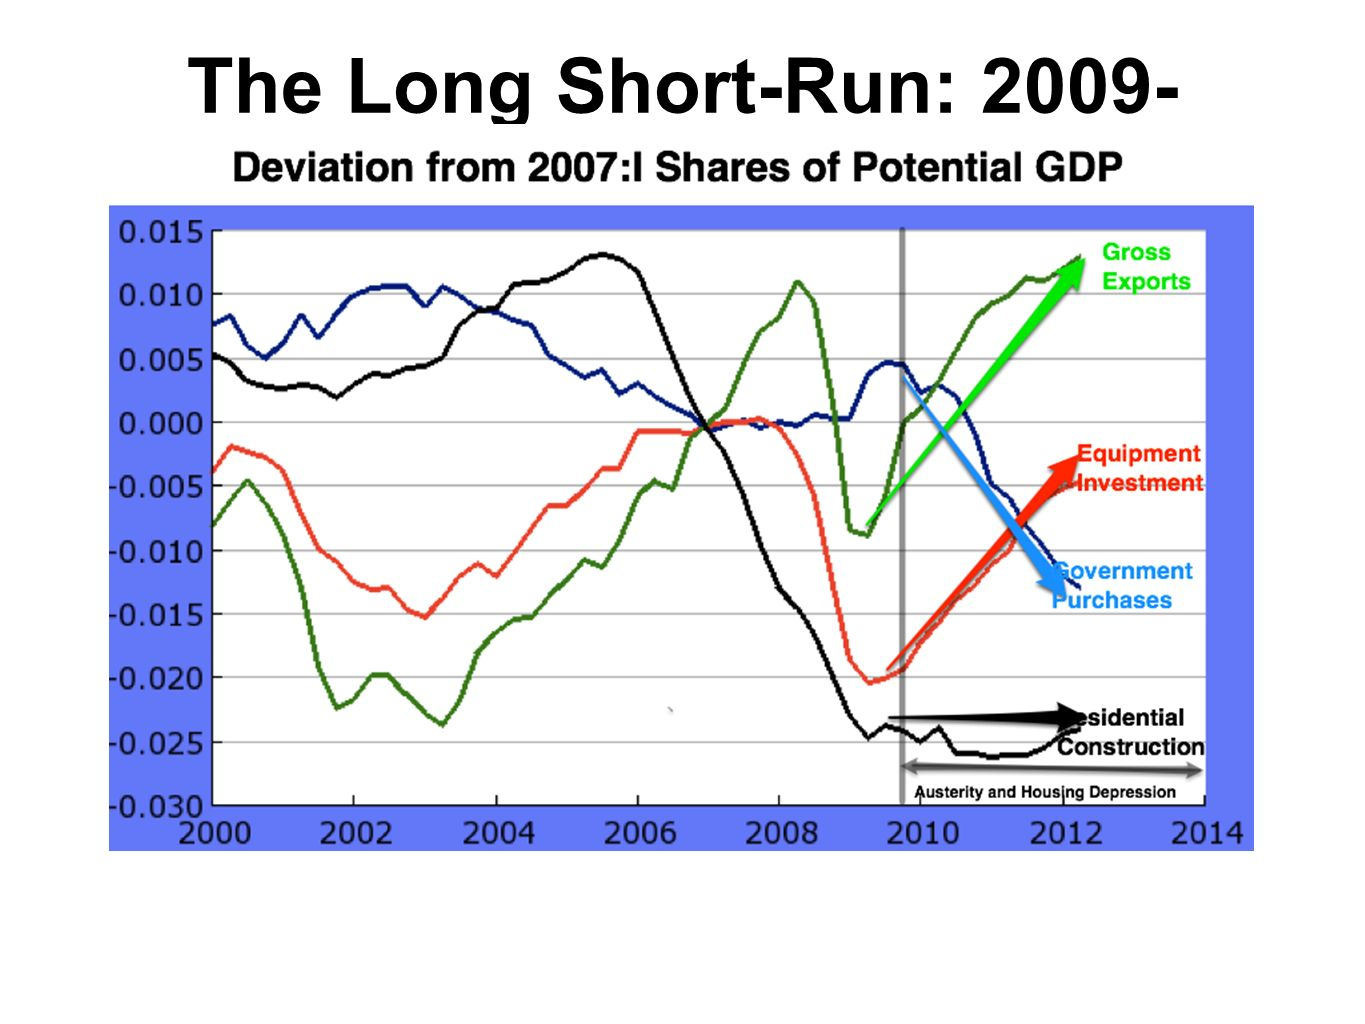 The Long Short-Run: 2009-